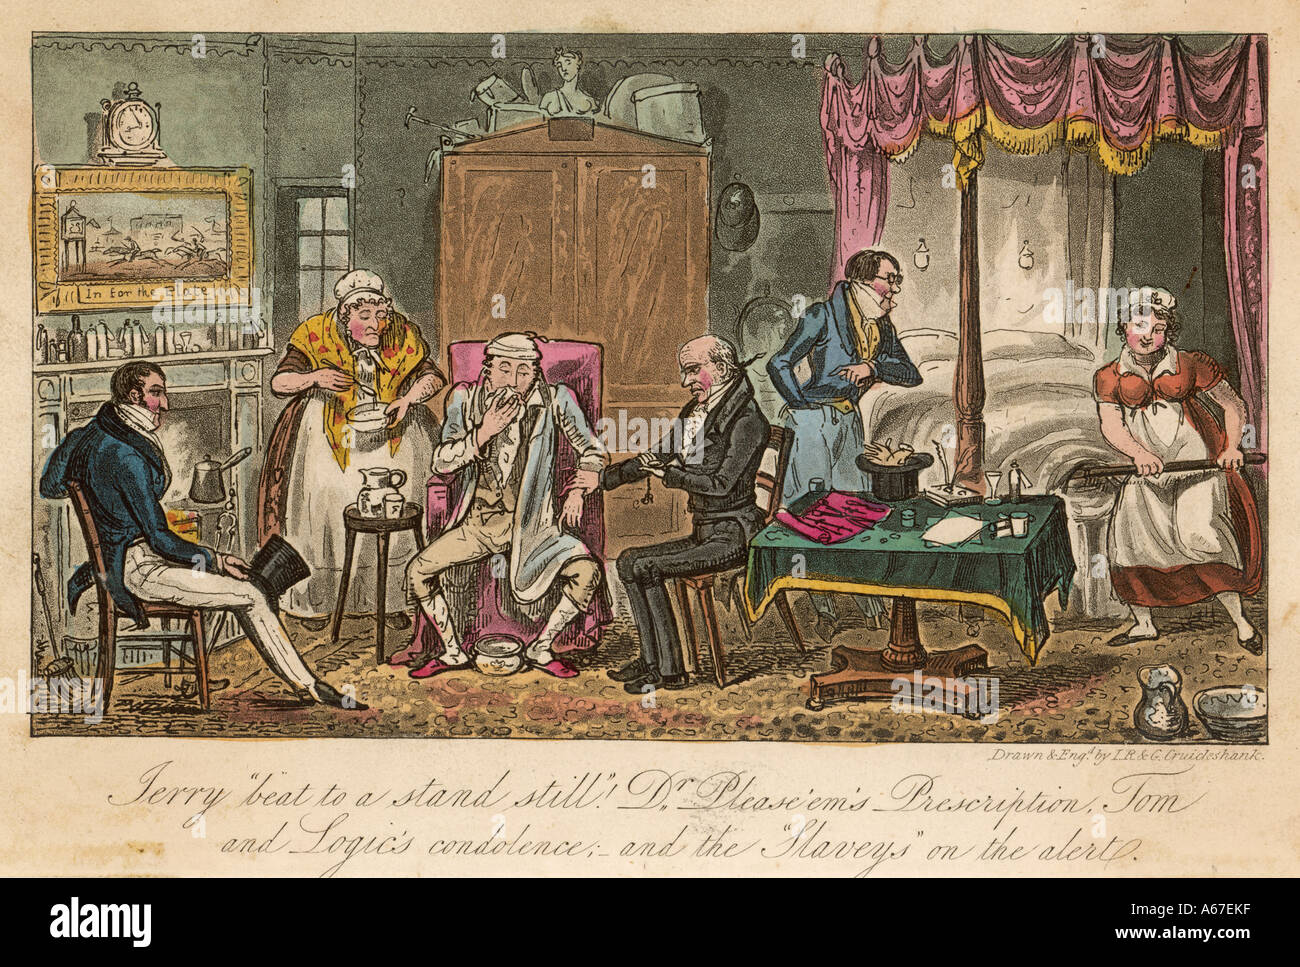 Egan Life In London 1820